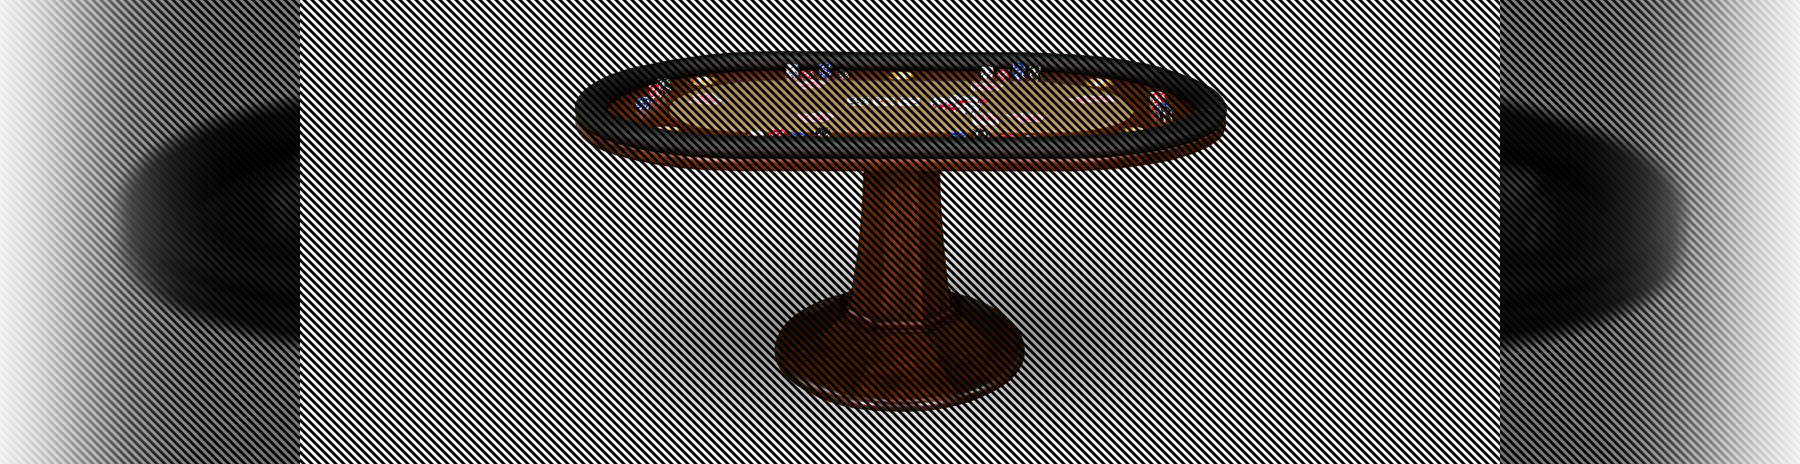 Furniture Poker Table Header Image